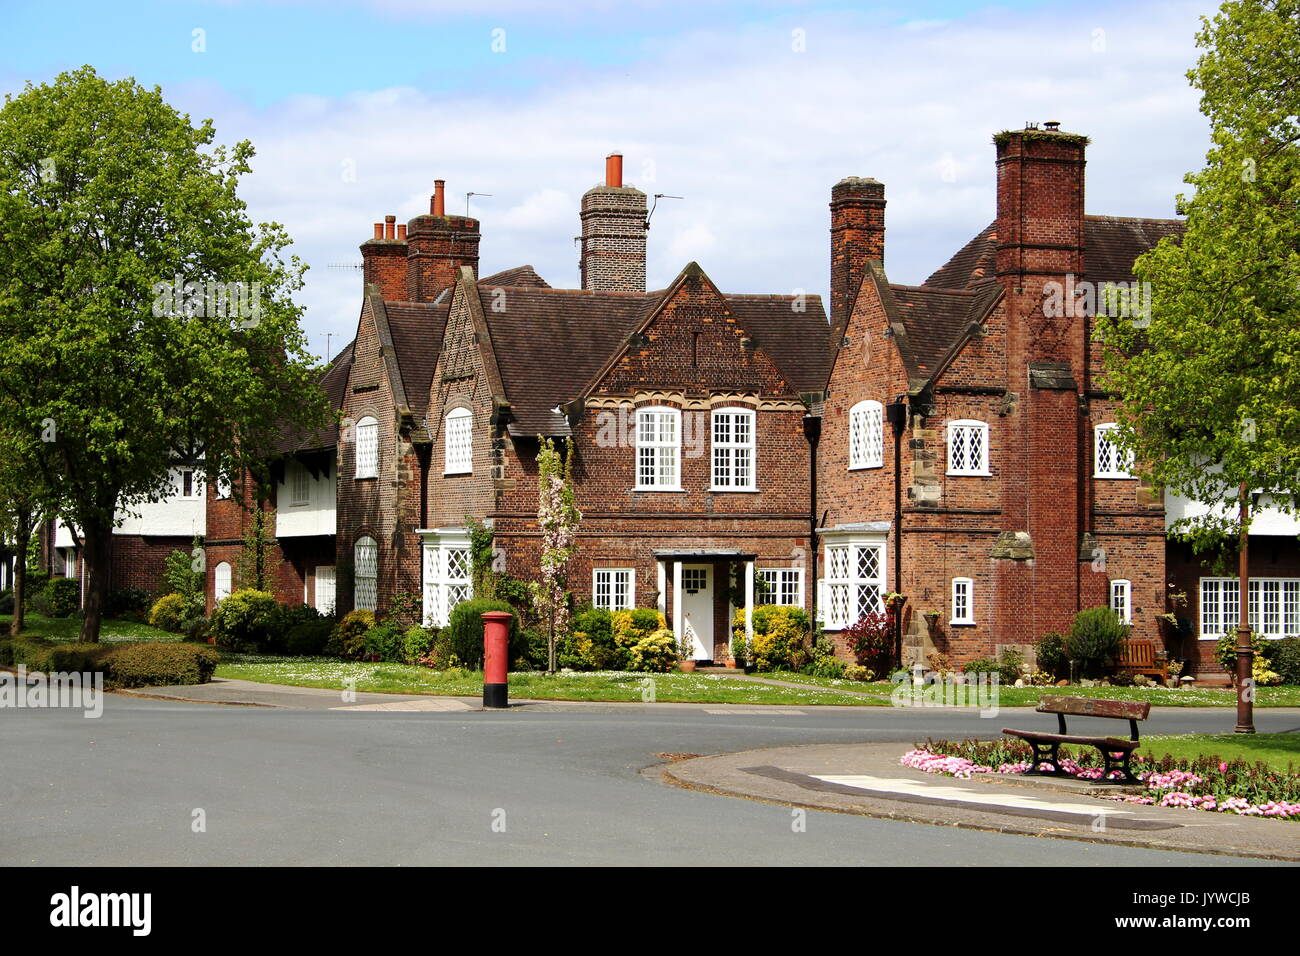 Port Sunlight Village, founded by soap king William Hesketh Lever in 1888, to offer a better quality of life to factory workers - Stock Image